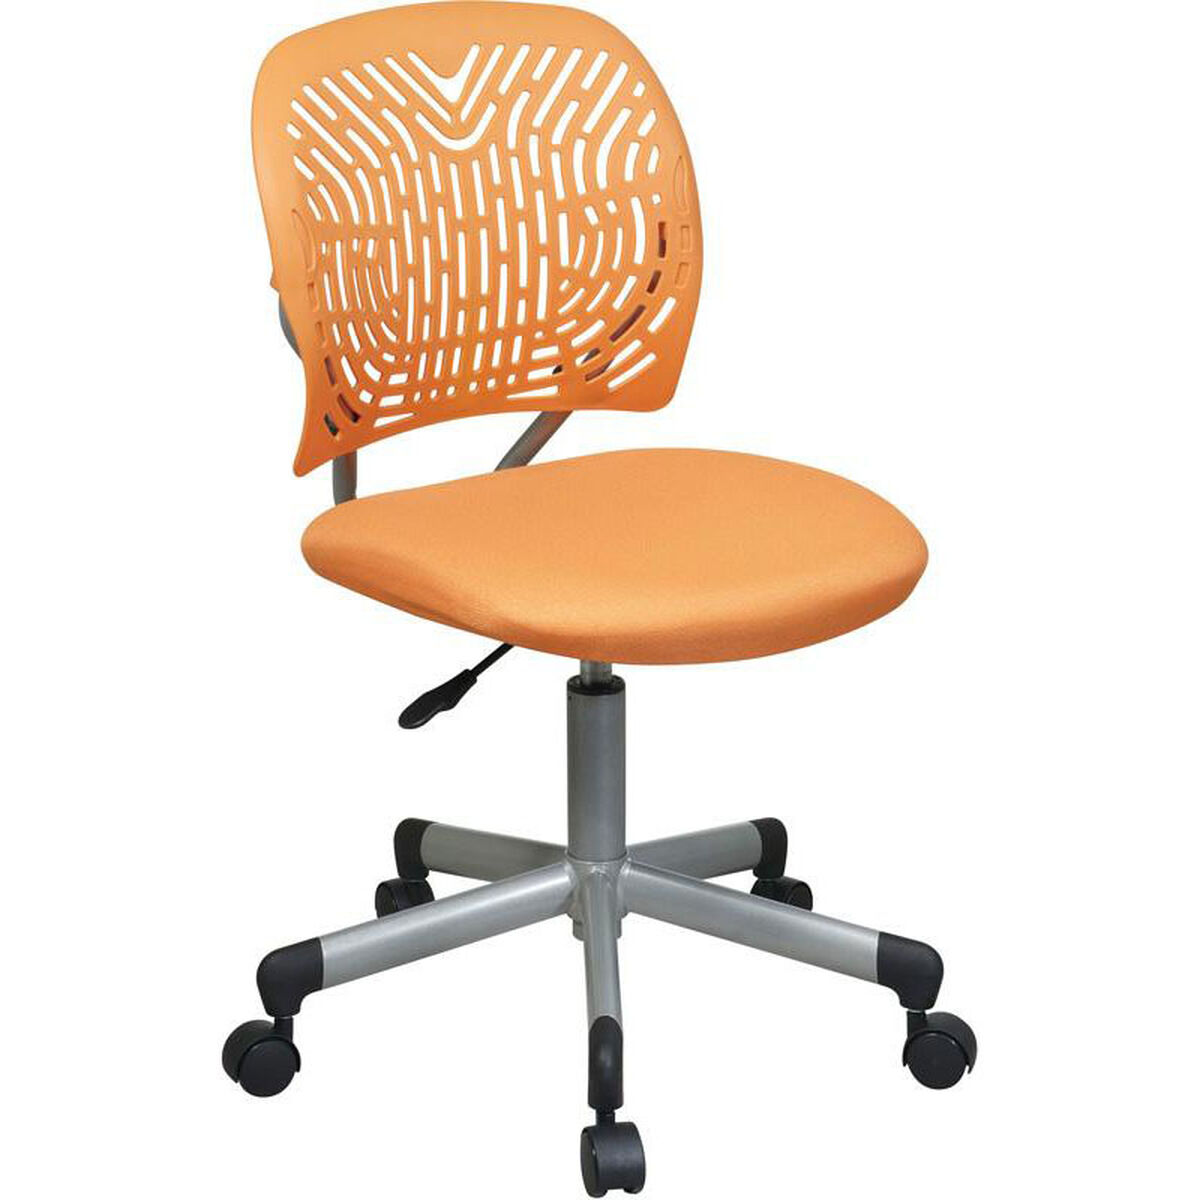 Our Osp Designs Designer Mesh Seat Computer Task Chair With Height Adjustment And Casters